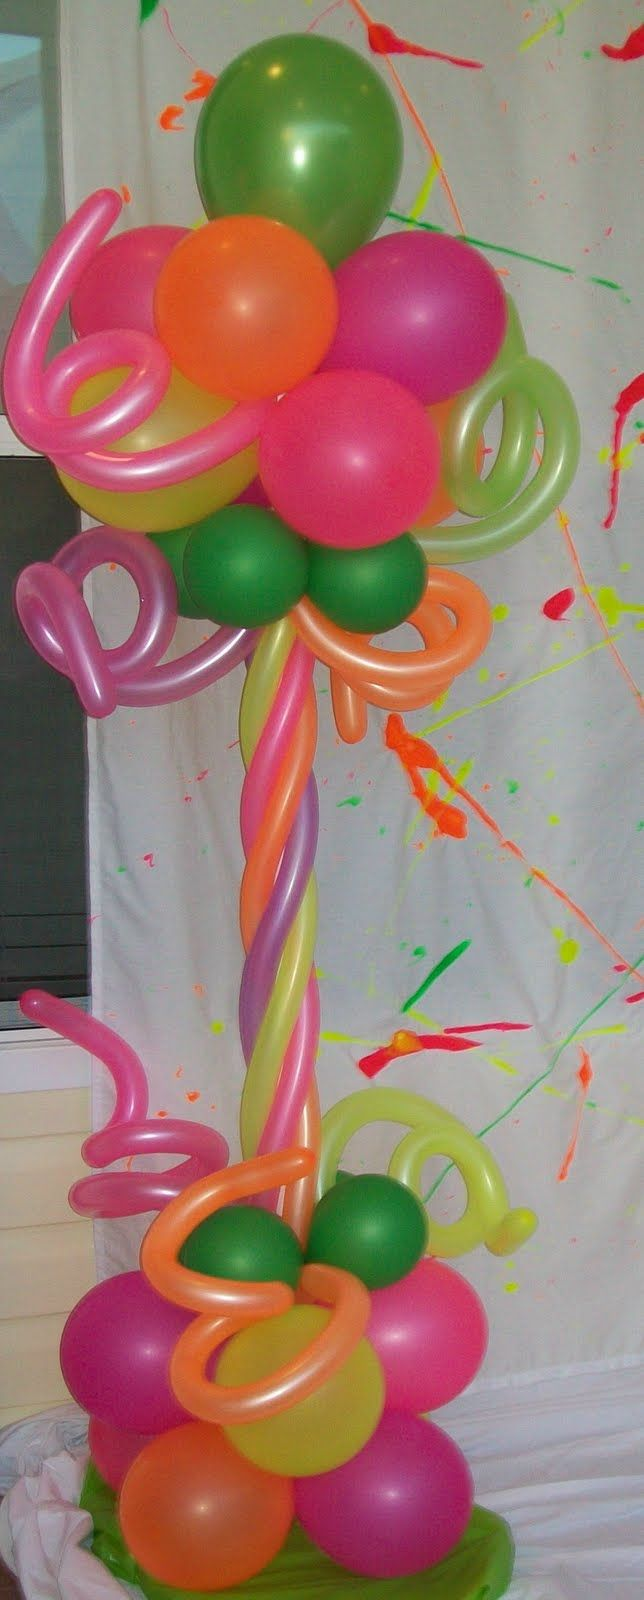 Party balloons decorations - Find This Pin And More On Balloon Decoration